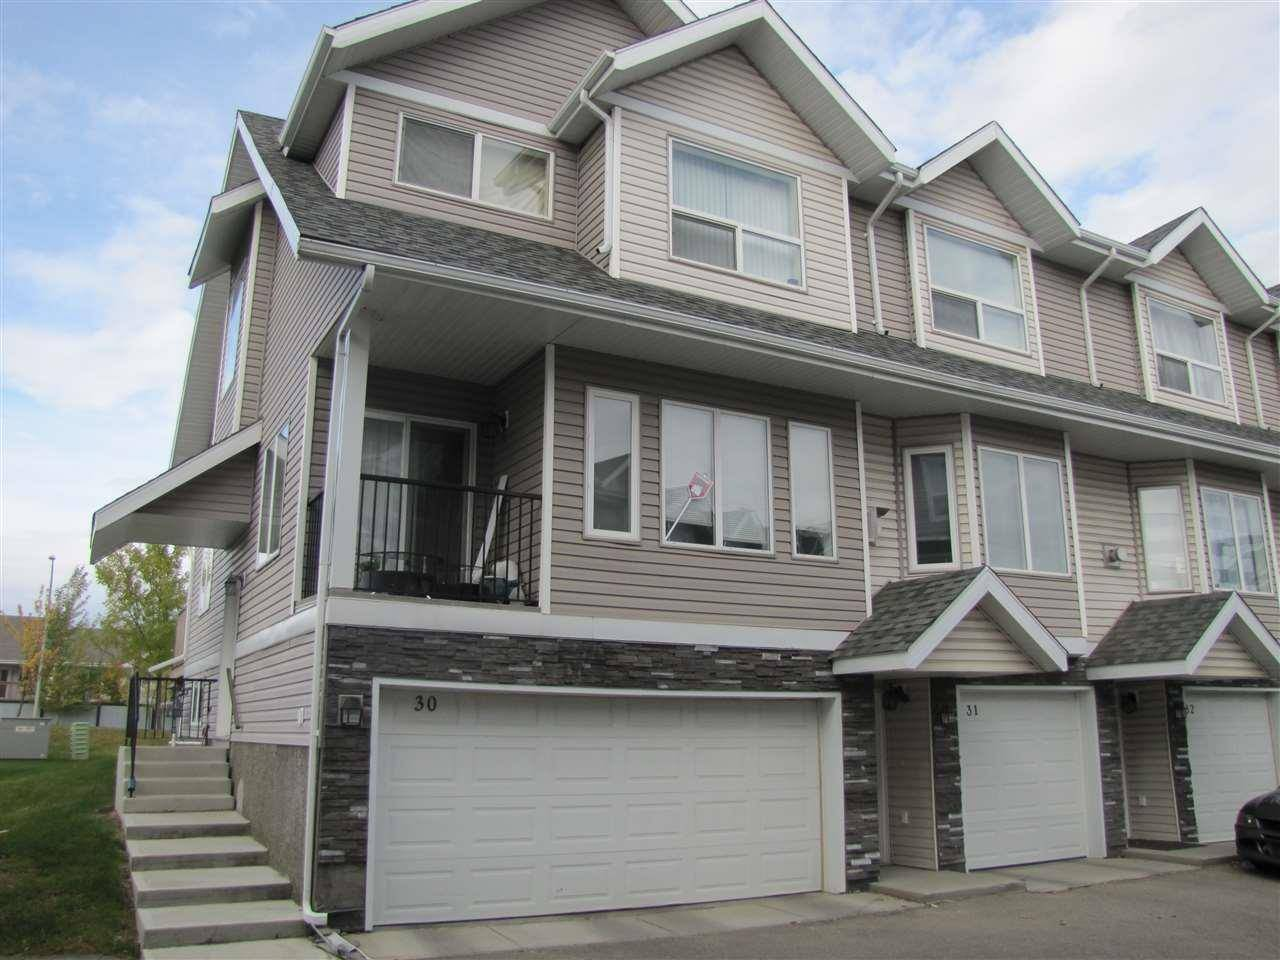 Townhouse for sale at 13215 153 Ave Nw Unit 30 Edmonton Alberta - MLS: E4176401